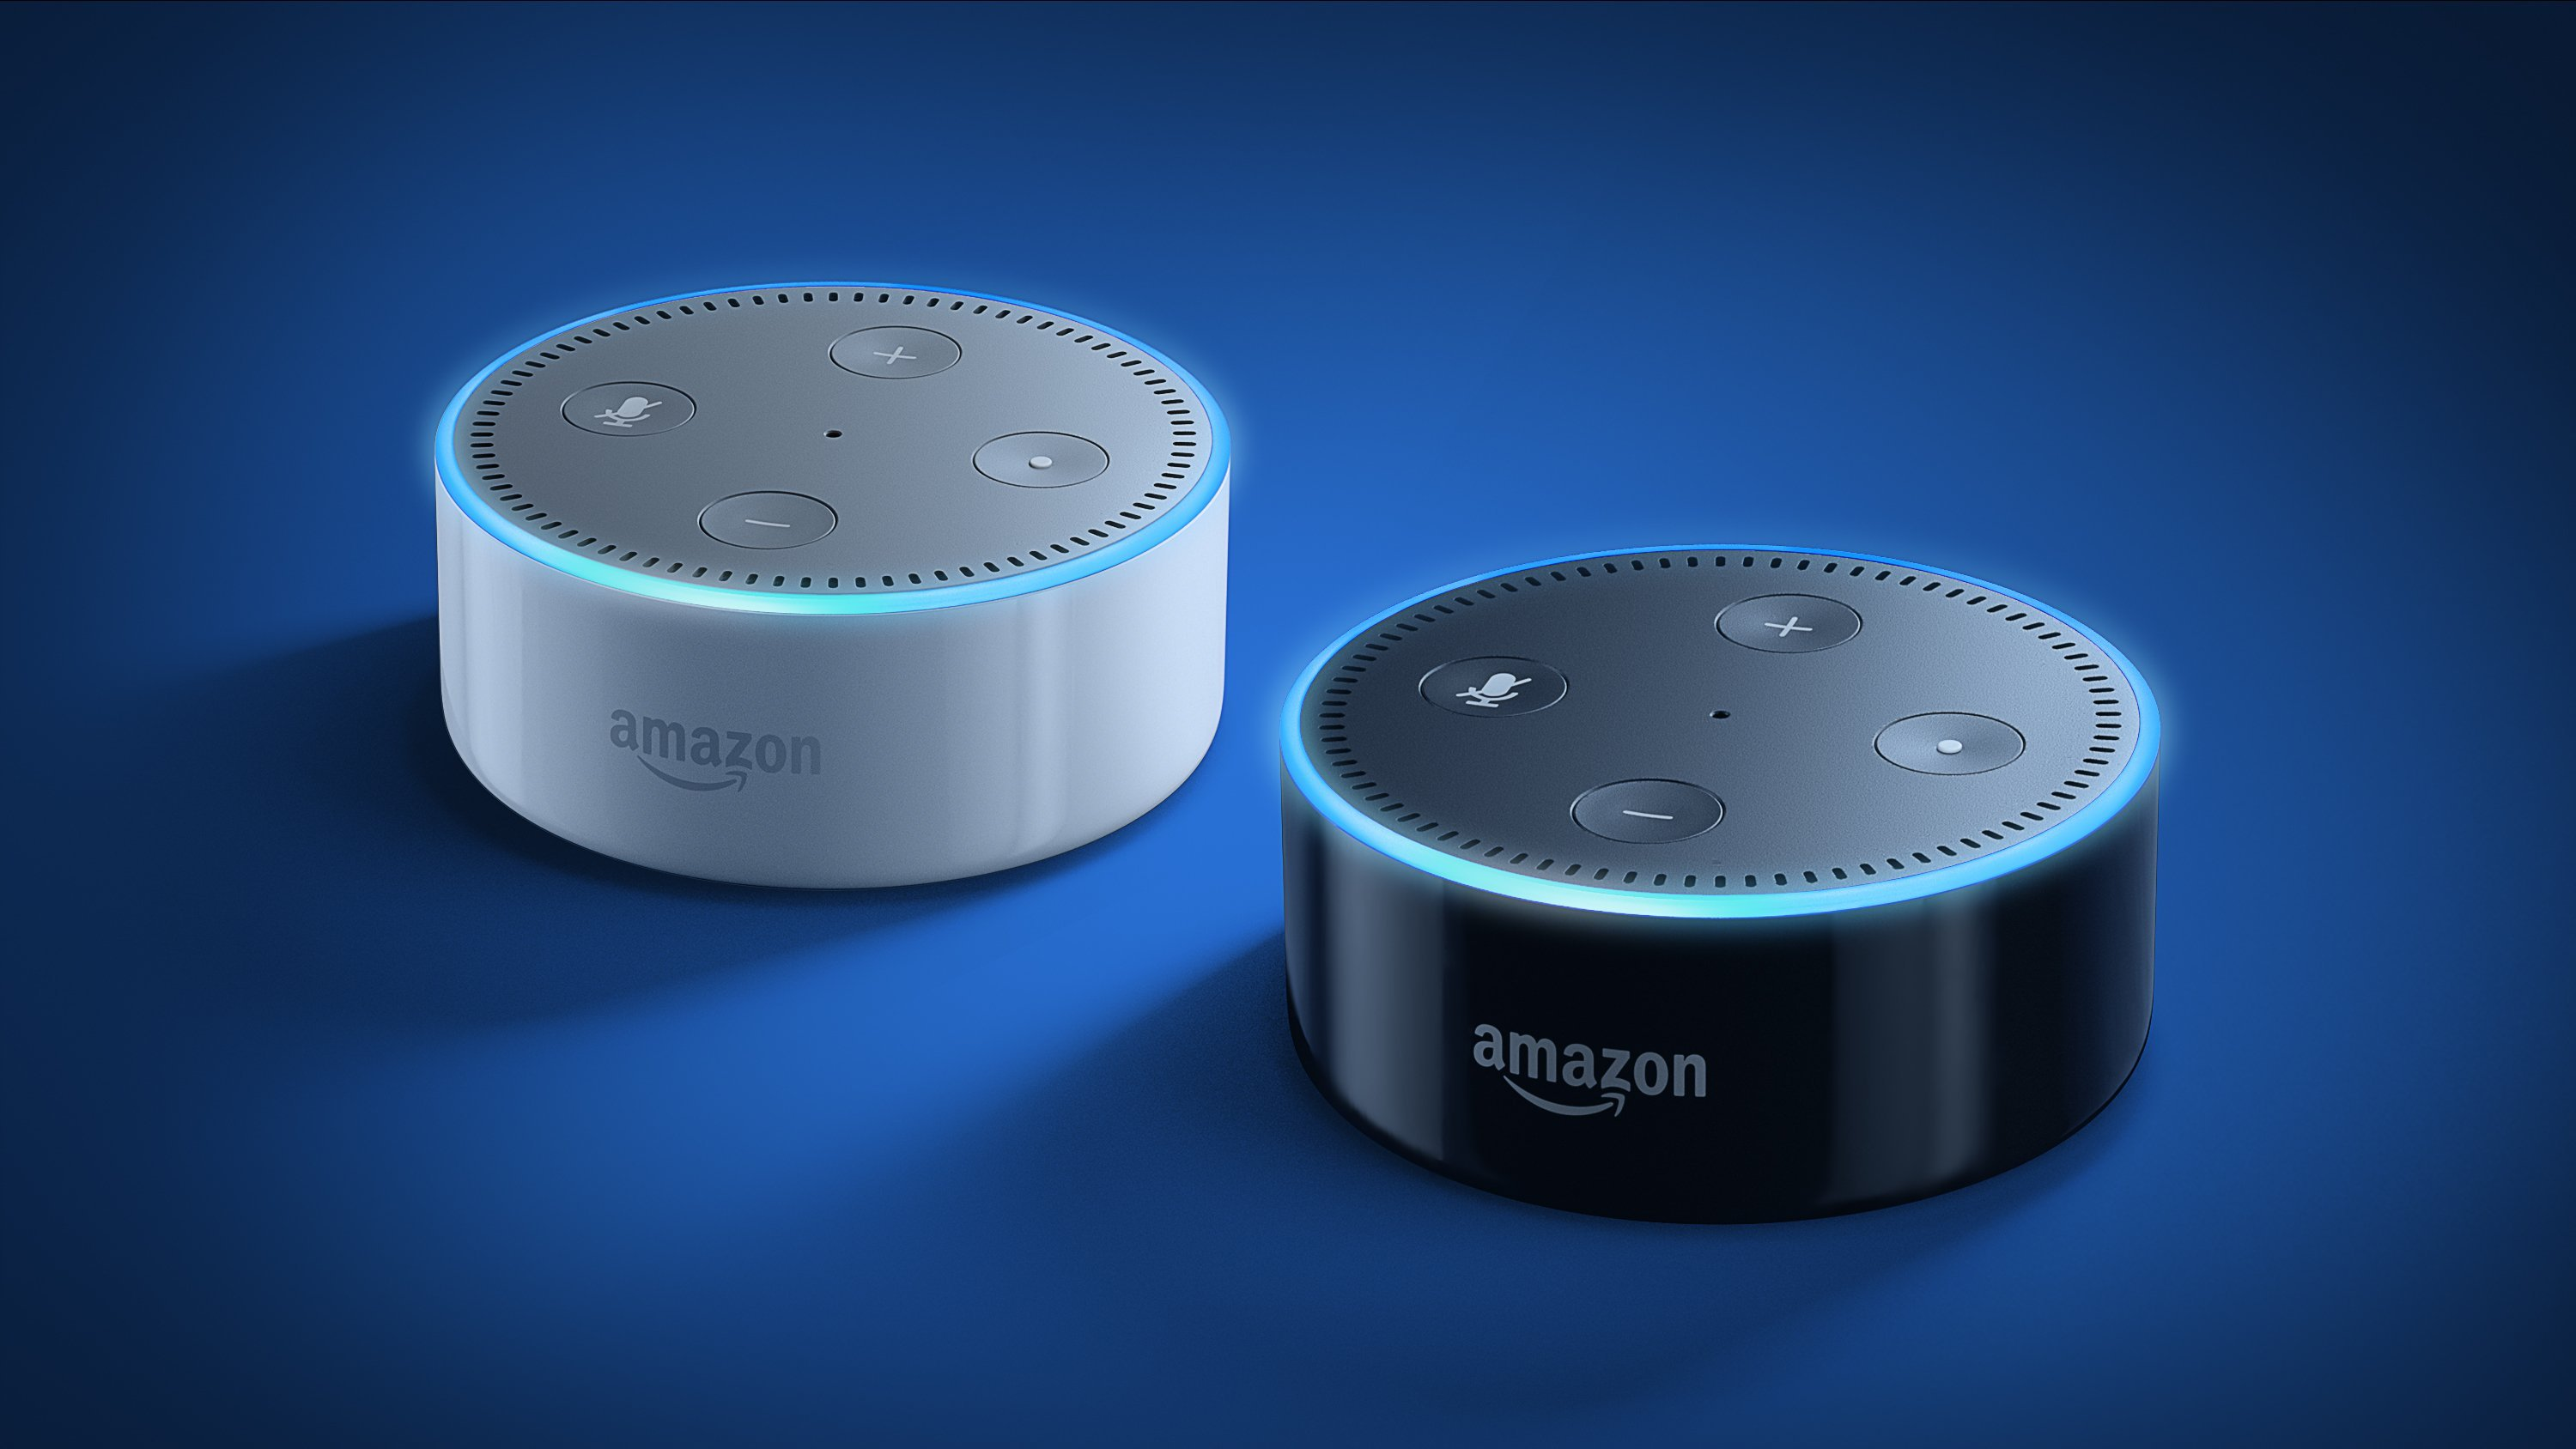 Amazon Alexa : un nouvel indice prouve son arrivée imminente en France